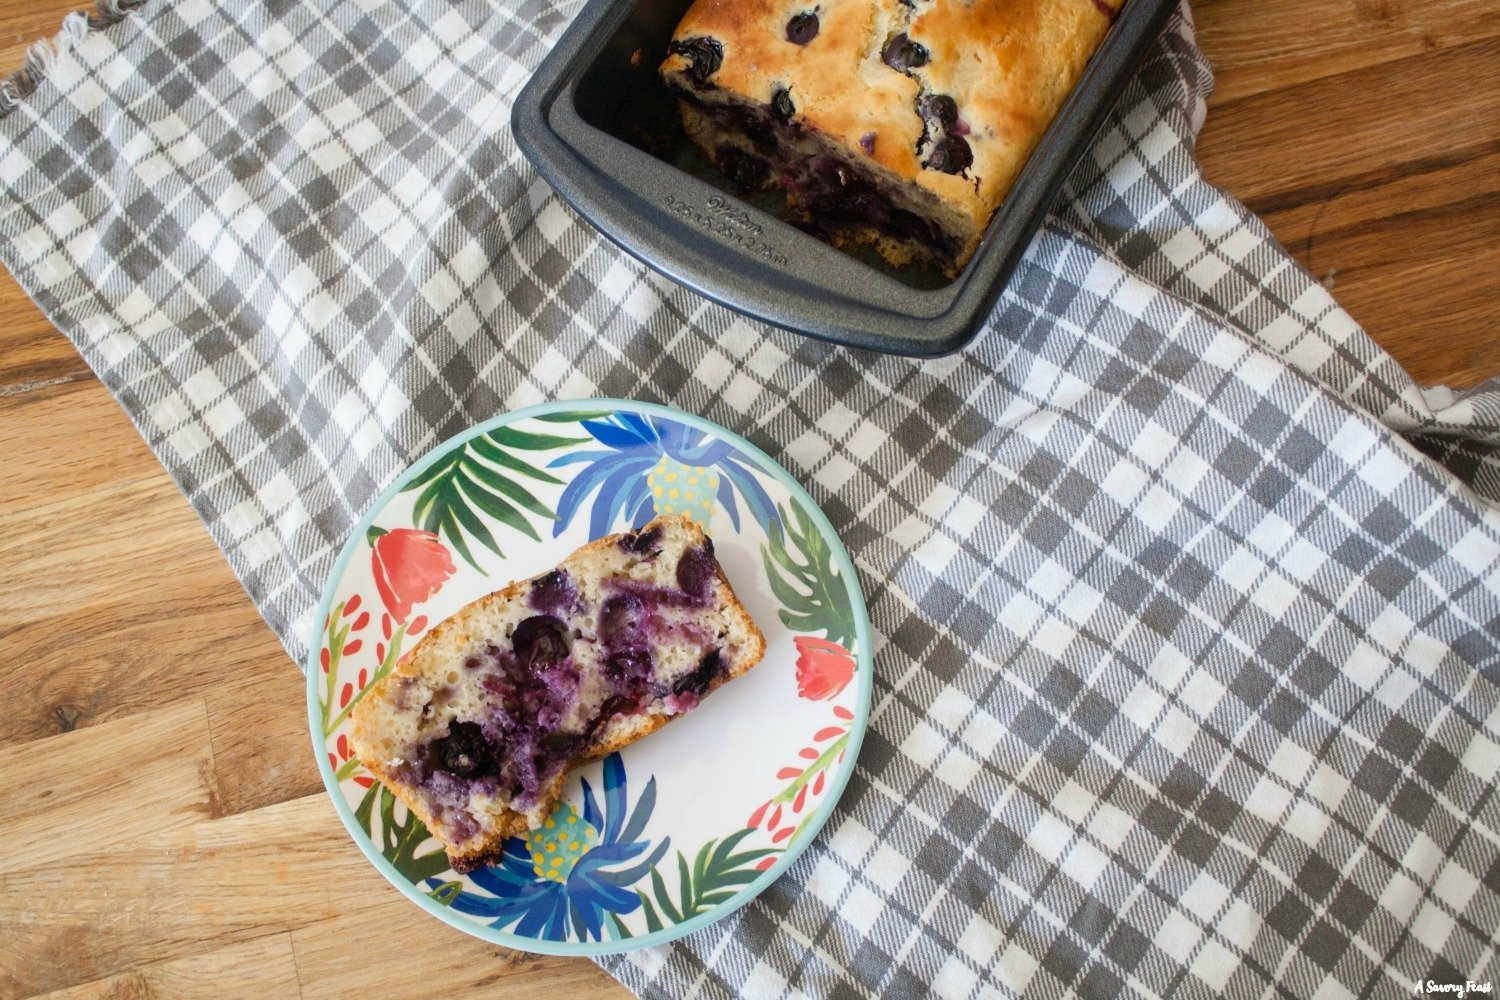 Greek Yogurt Blueberry Bread sweetened with honey